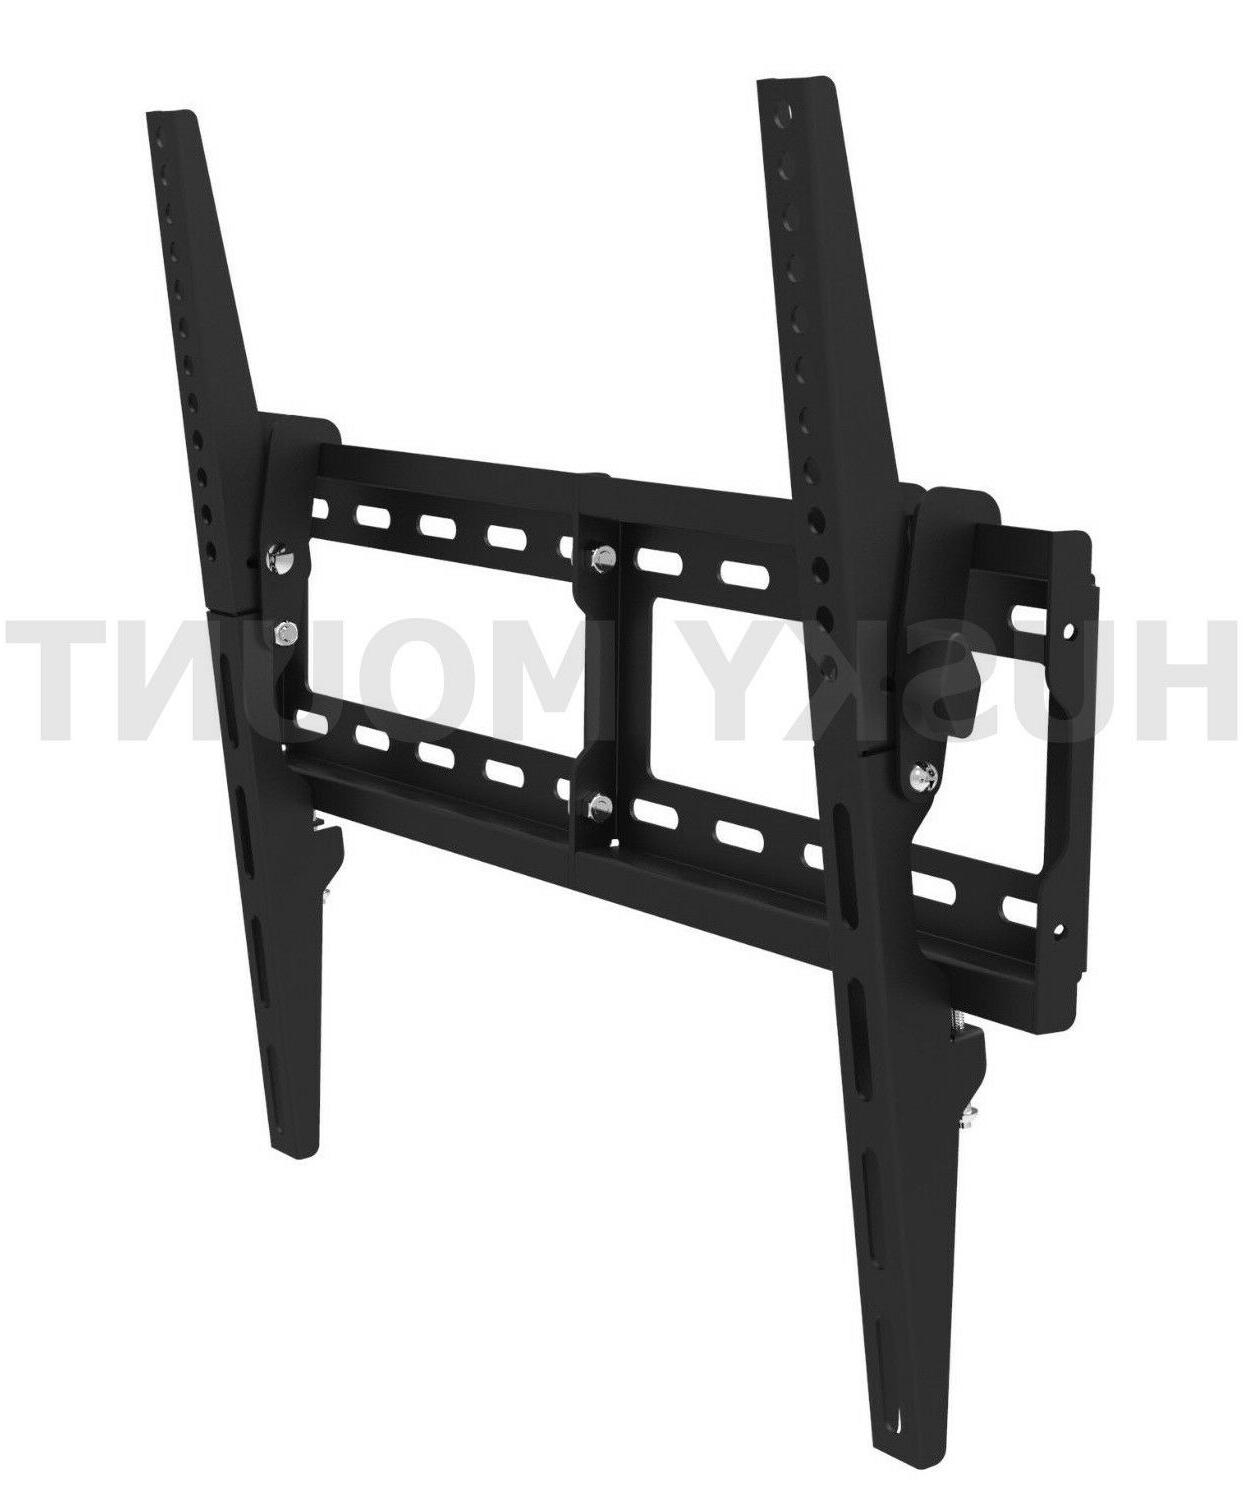 Husky MountTM 24 65 TV Wall Profile TV Bracket Fits most 24 32 40 42 52 55 LED Screen. and capacity. Made Steel. Comes with necessary hardware and warranty.